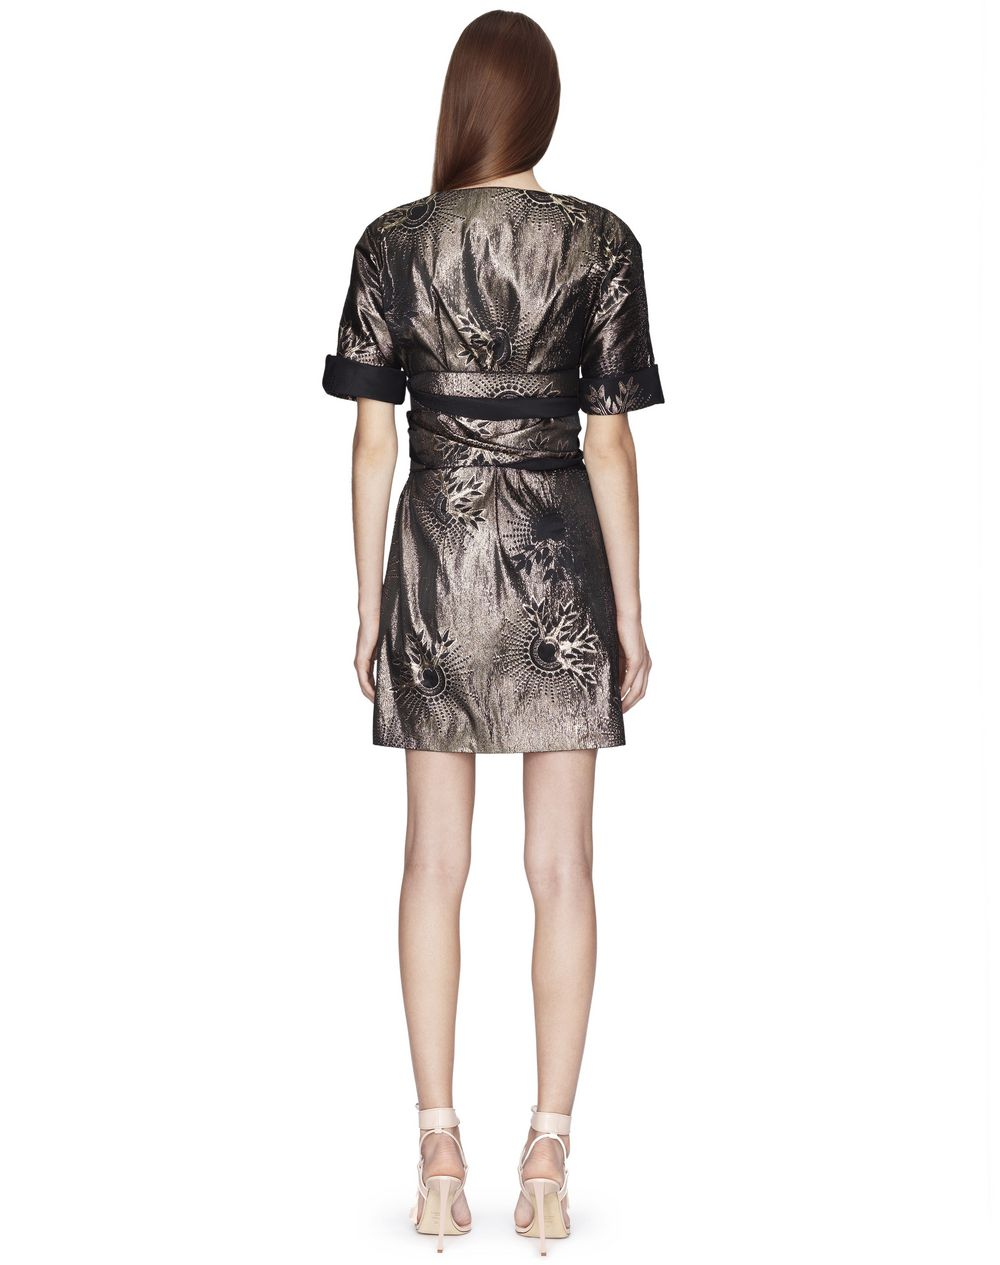 SHORT LAMÉ MOTIF DRESS - Lanvin